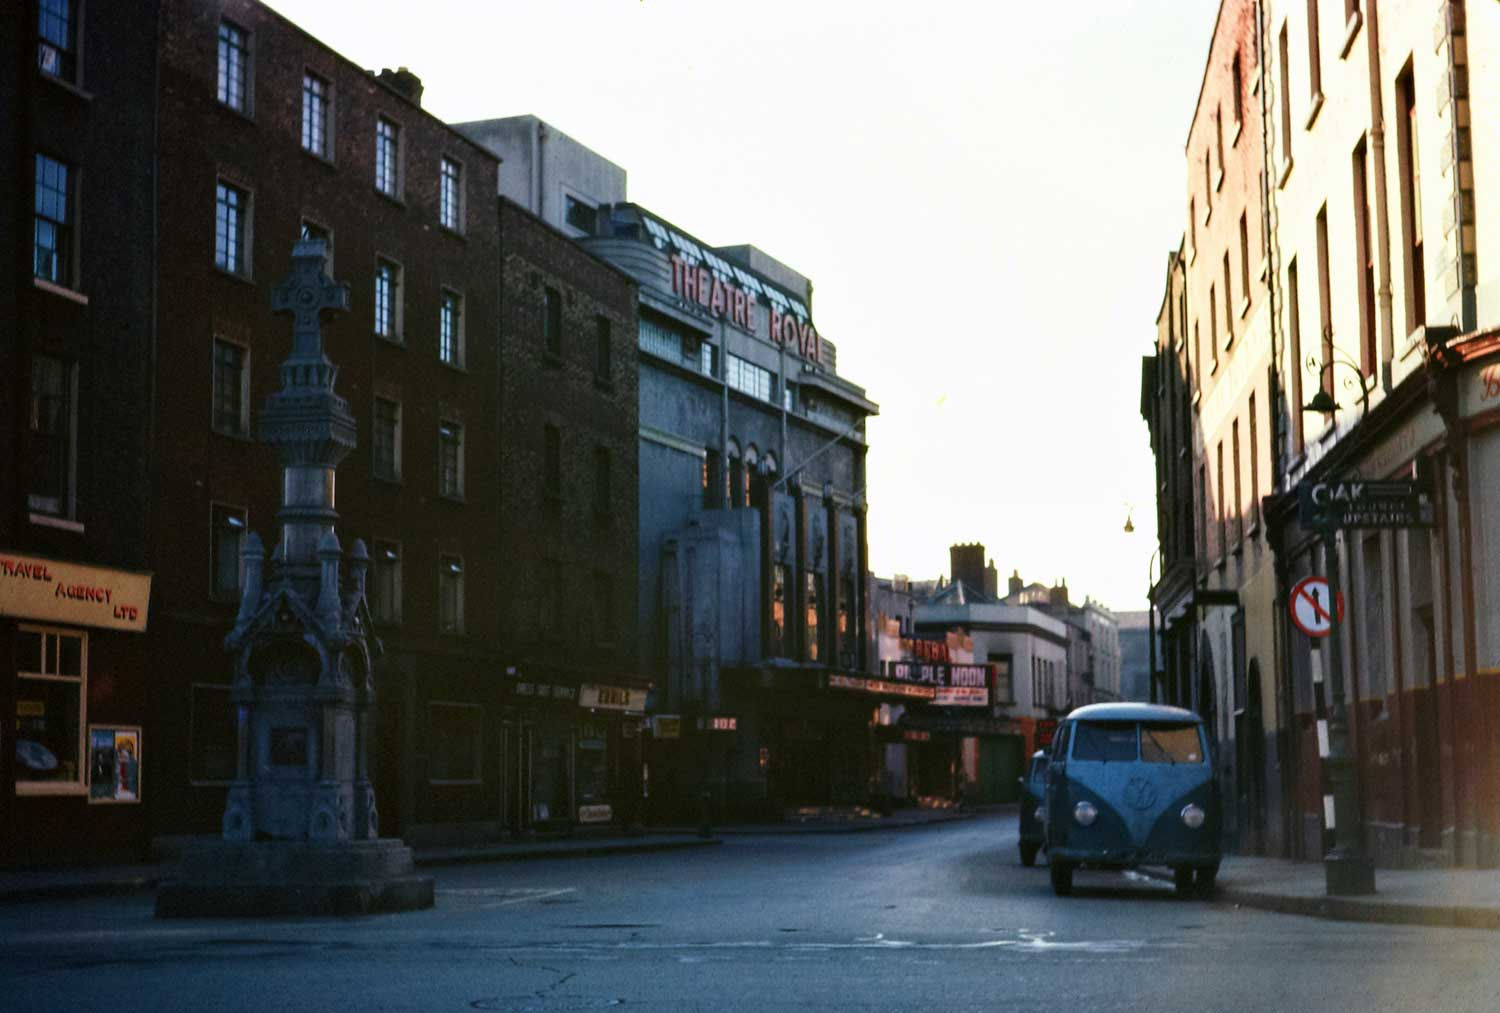 April 1962: Theatre Royal, Hawkins Street, Dublin